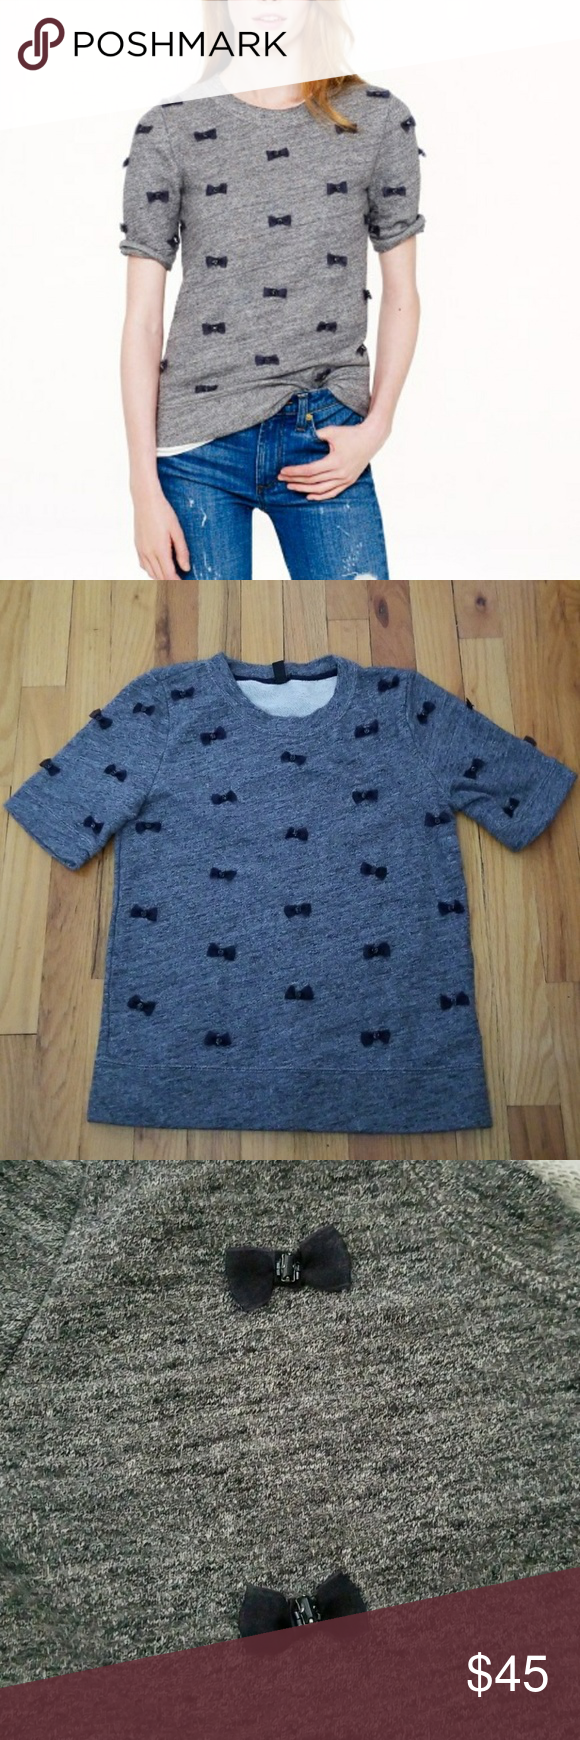 """NWOT J. Crew Mini-Bows Sweatshirt NWOT. J. Crew mini-bows sweatshirt. Size XS. Gray with navy blue bows and navy blue gems in the middle of each! Great condition! No missing gems, new shirt. See pics for materials and cleaning instructions. Short sleeve. 24"""" length. 16"""" bust laying flat armpit to armpit. Bows cover front of sweatshirt and front/back of sleeves. Not on actual back of shirt. J. Crew Tops Sweatshirts & Hoodies"""